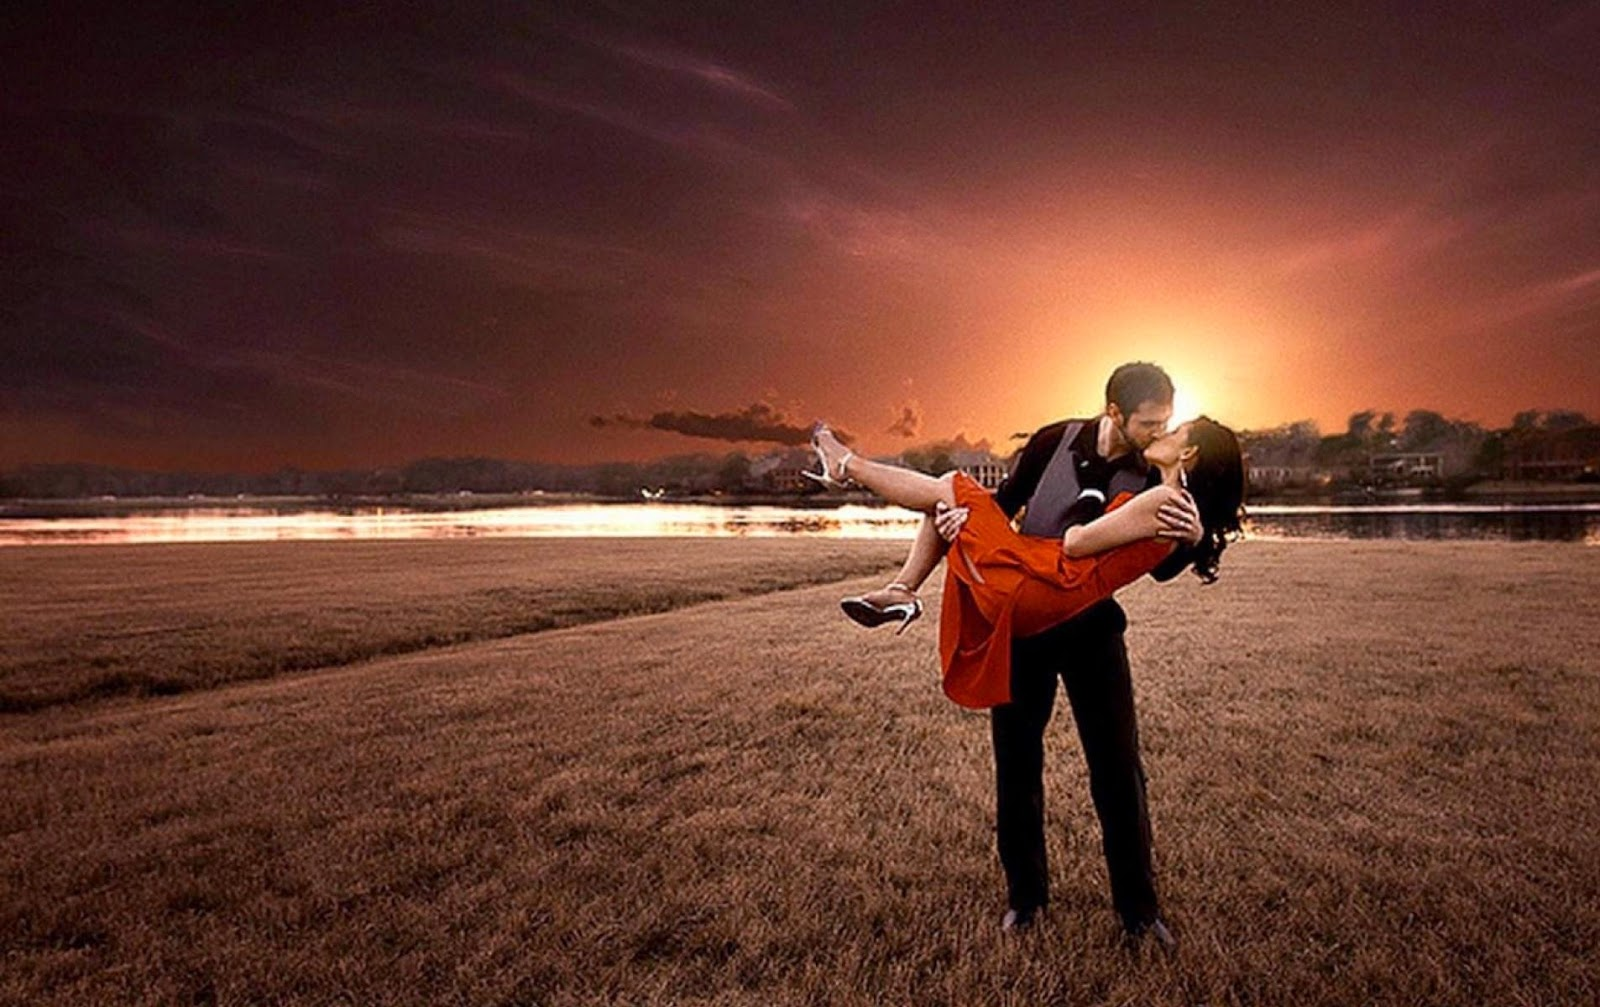 Beautiful Romantic Love Hd Wallpapers For Couples: How To Bring Back The Spark In Your Relationship